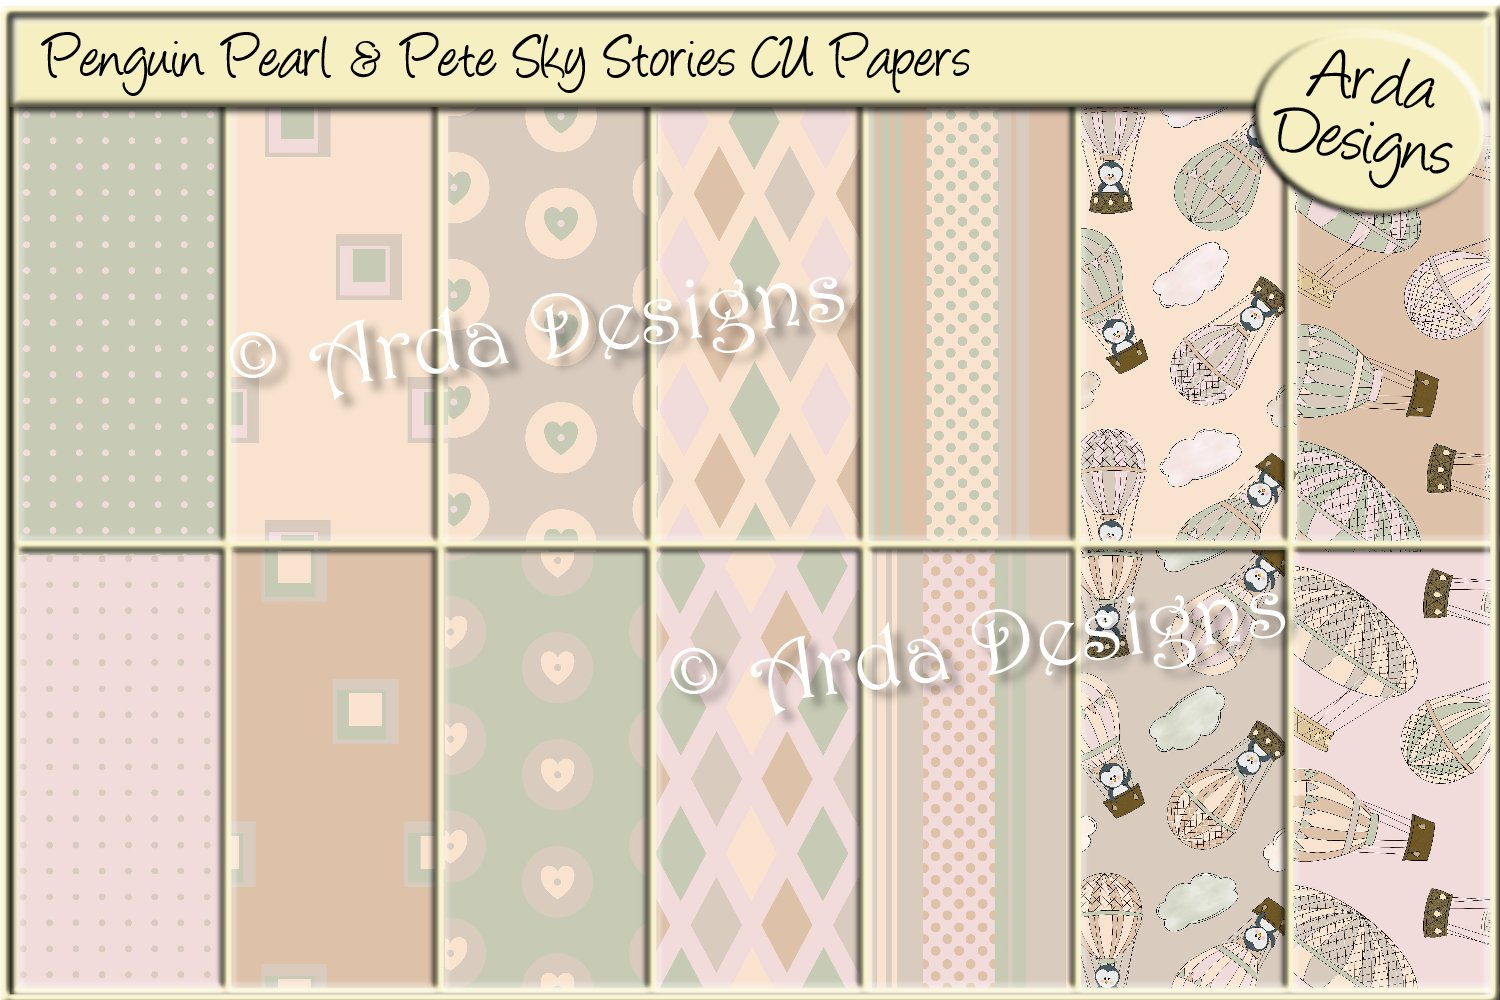 Penguin Pearl & Pete Sky Stories CU Papers